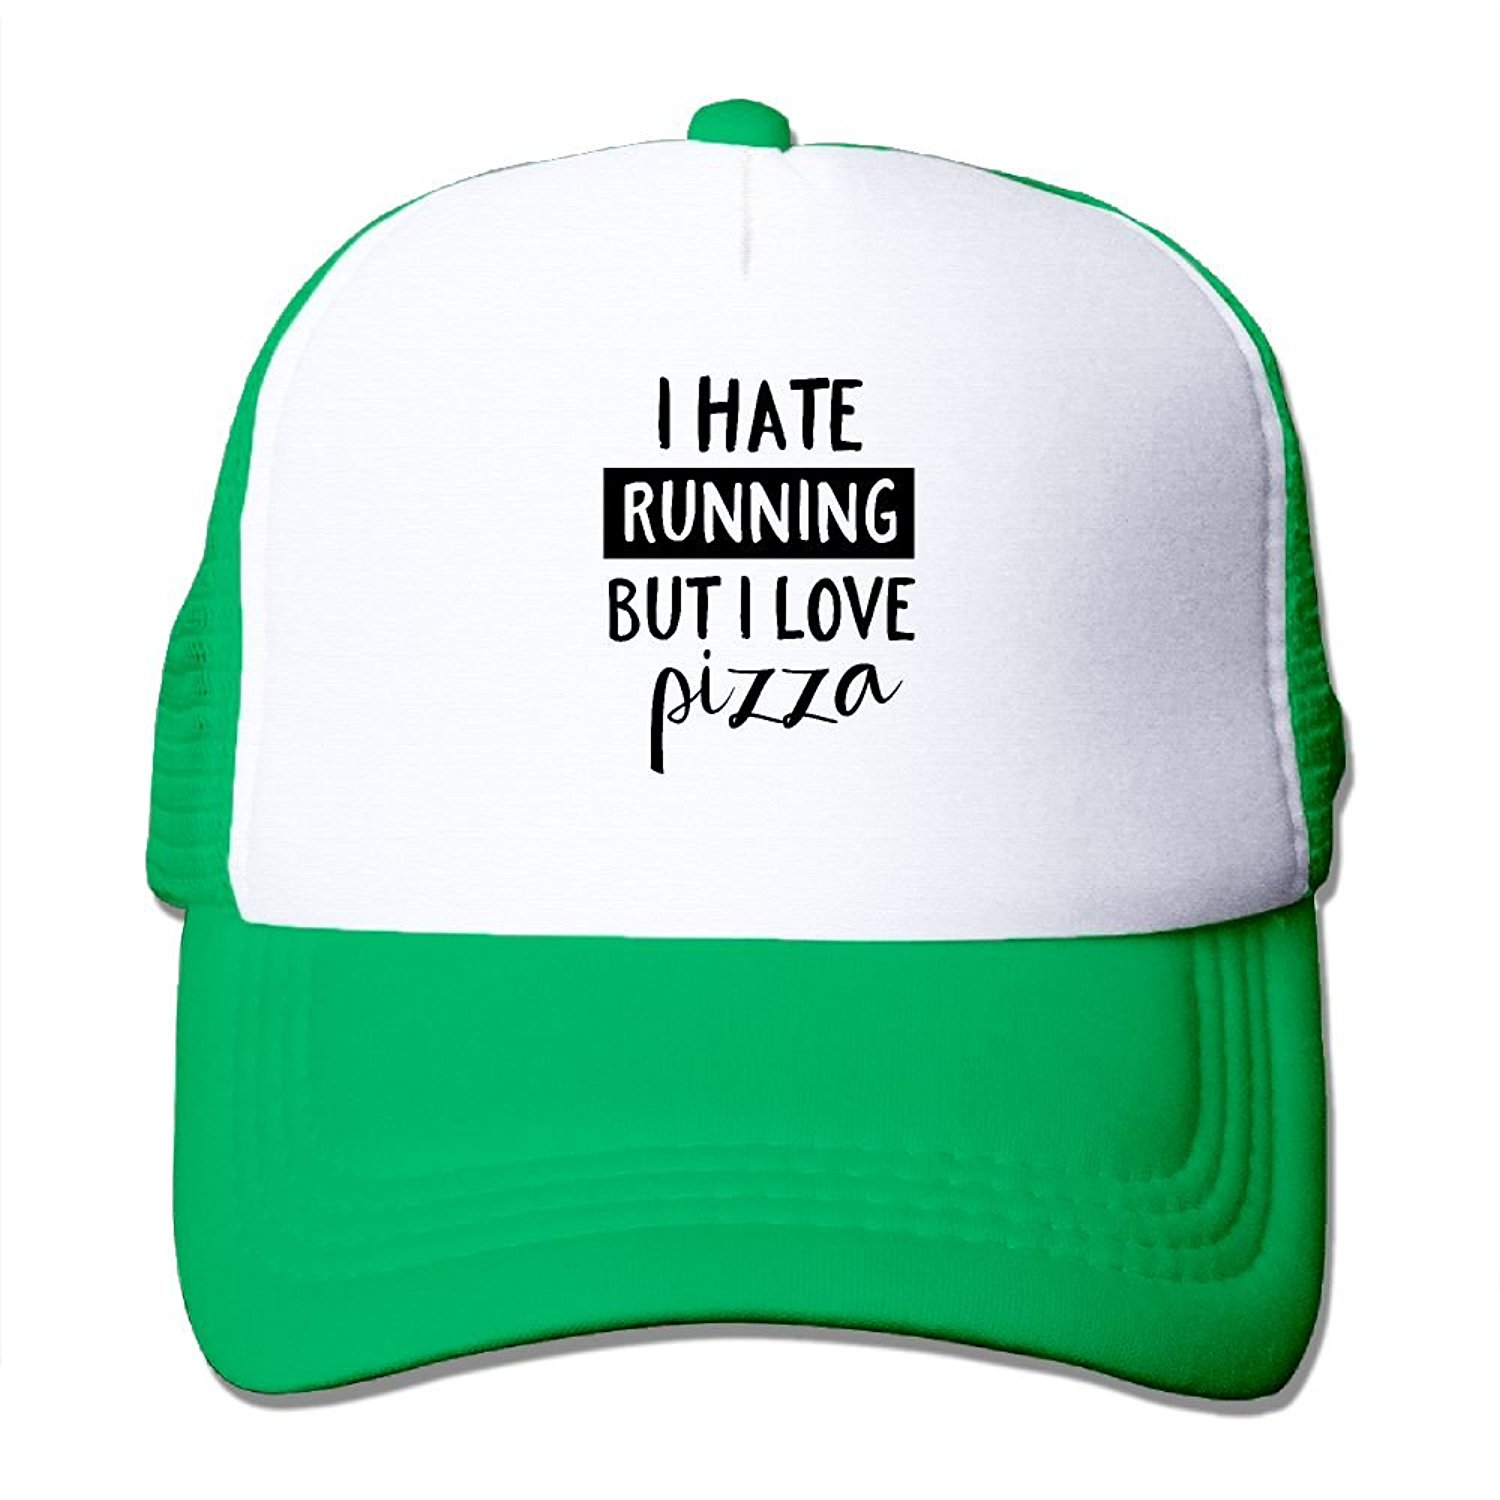 8bf674bdb2e78 Get Quotations · Crazy Popo Outdoor Sports Hat - I Hate Running But I Love  Pizza Adjustable Trucker Hat